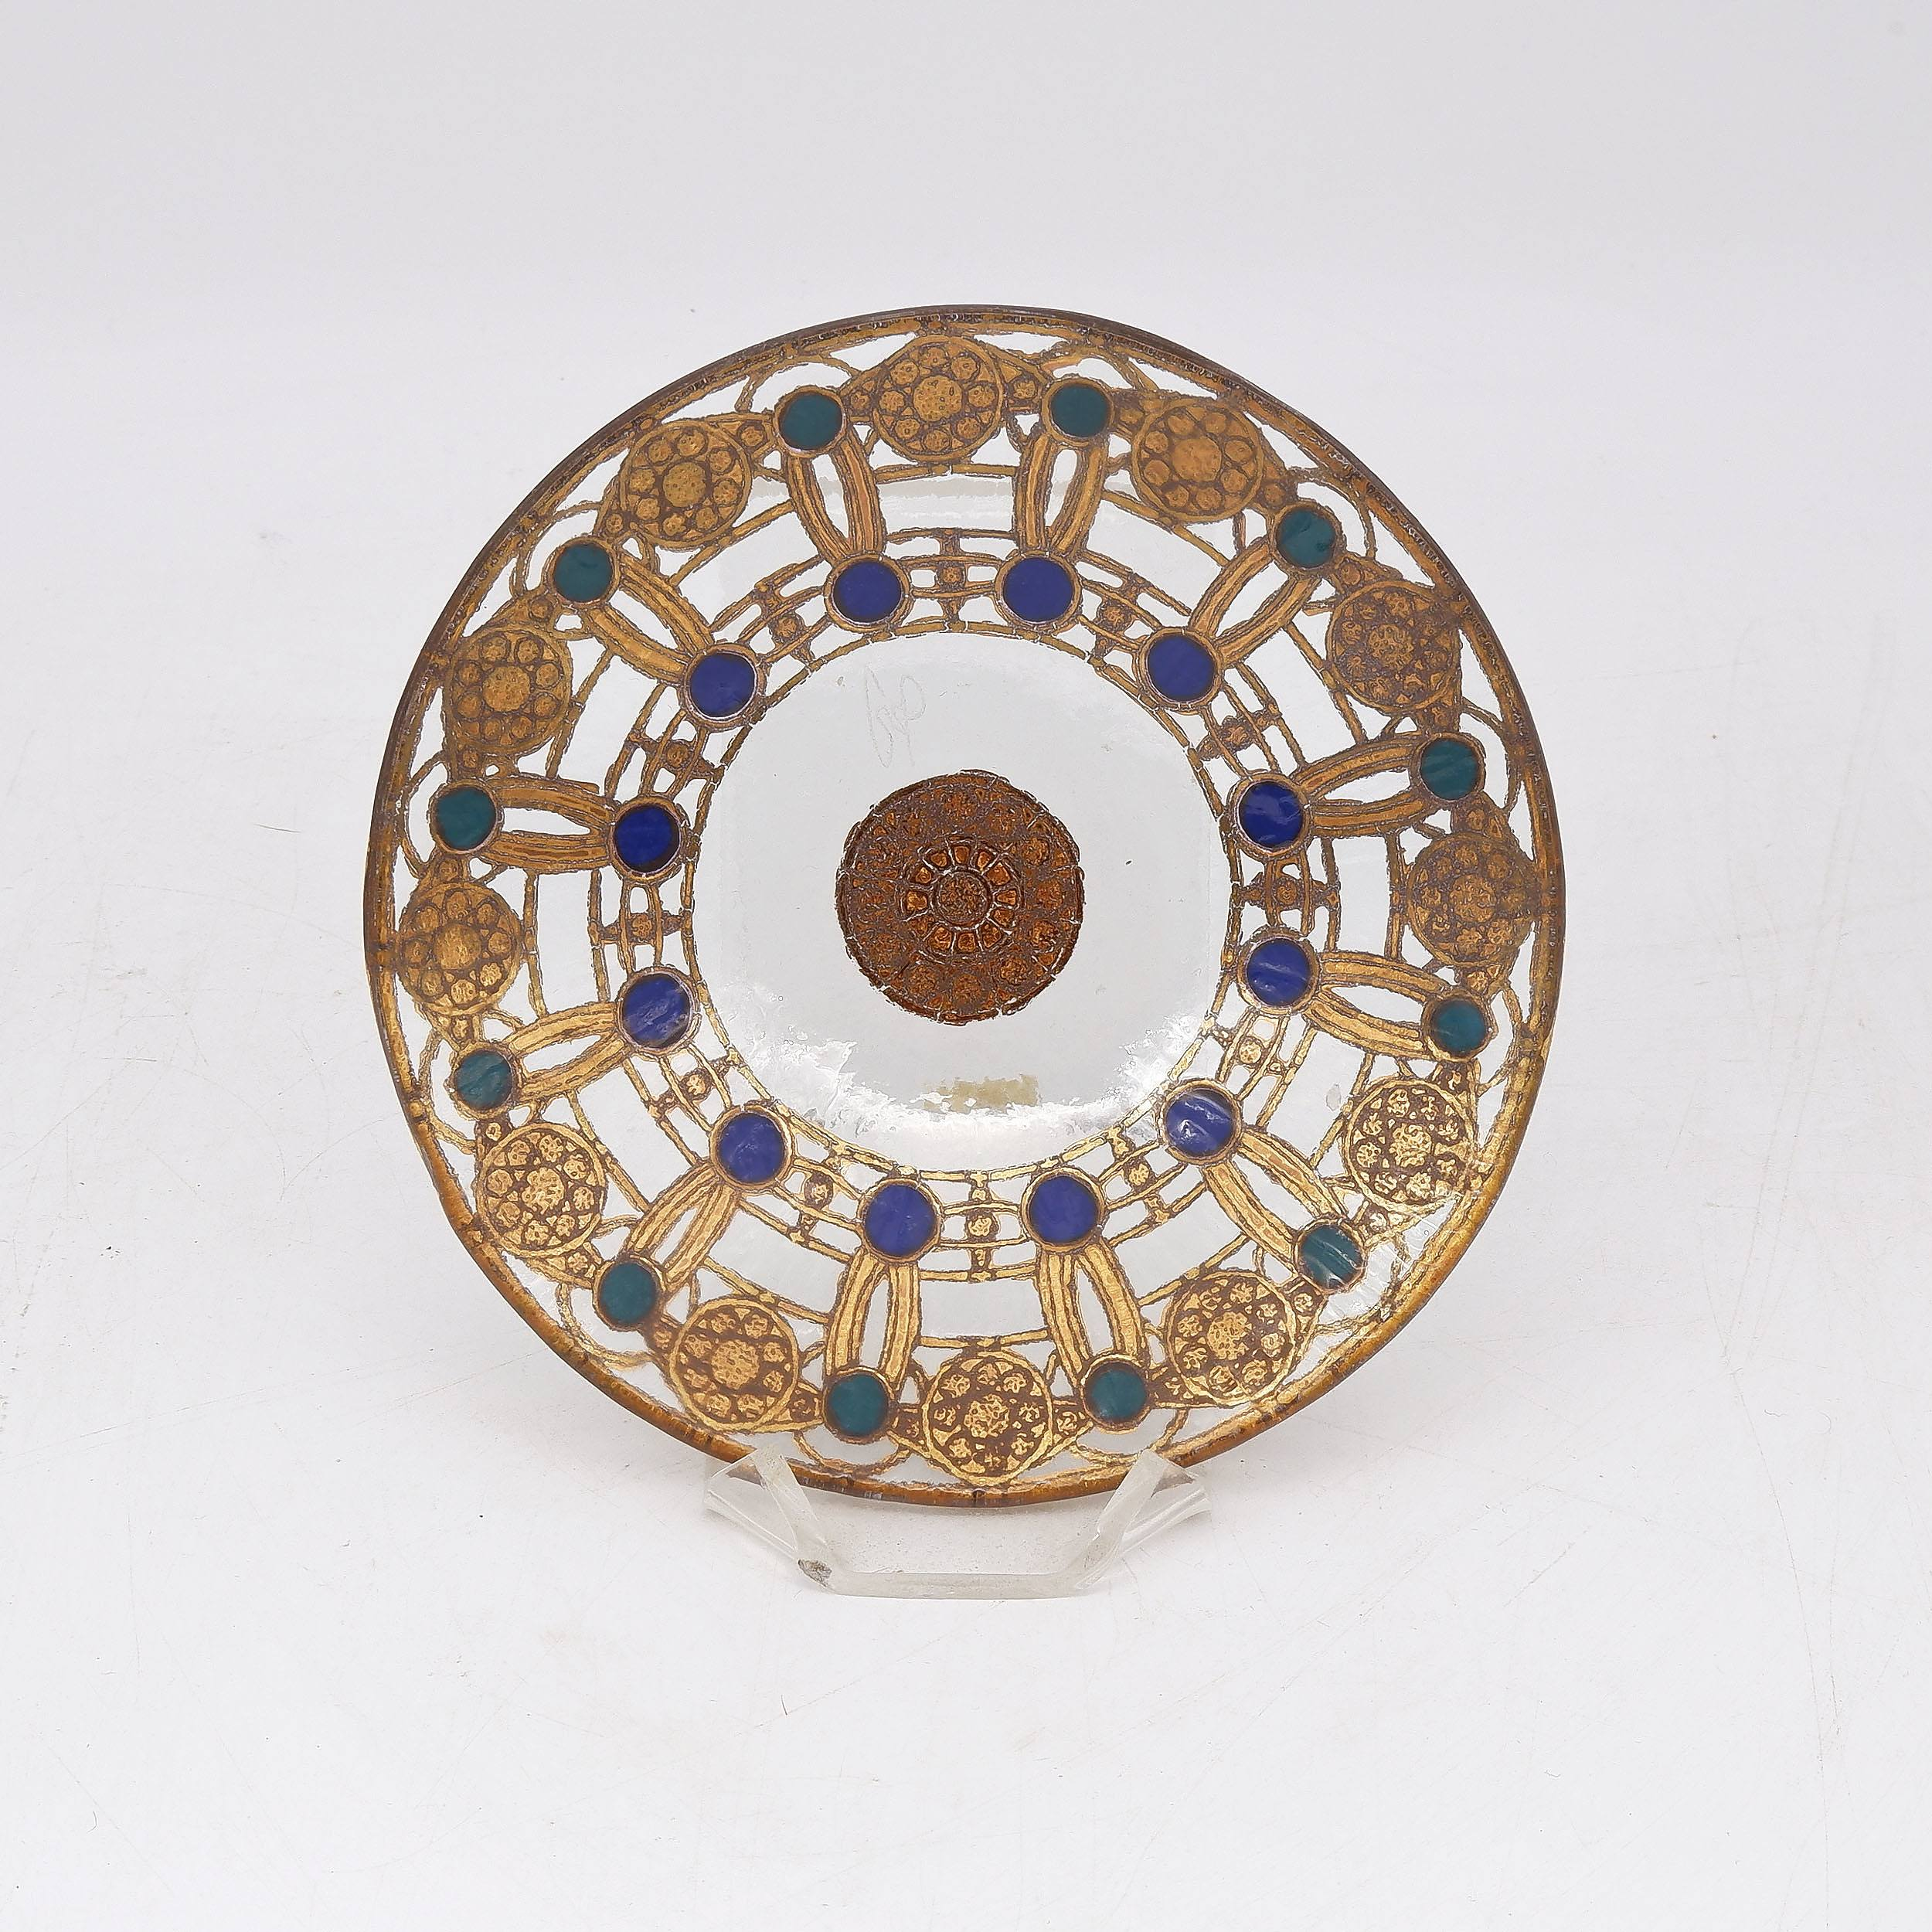 'Peter Crisp Small Gilded and Enamelled Glass Dish and Stand'